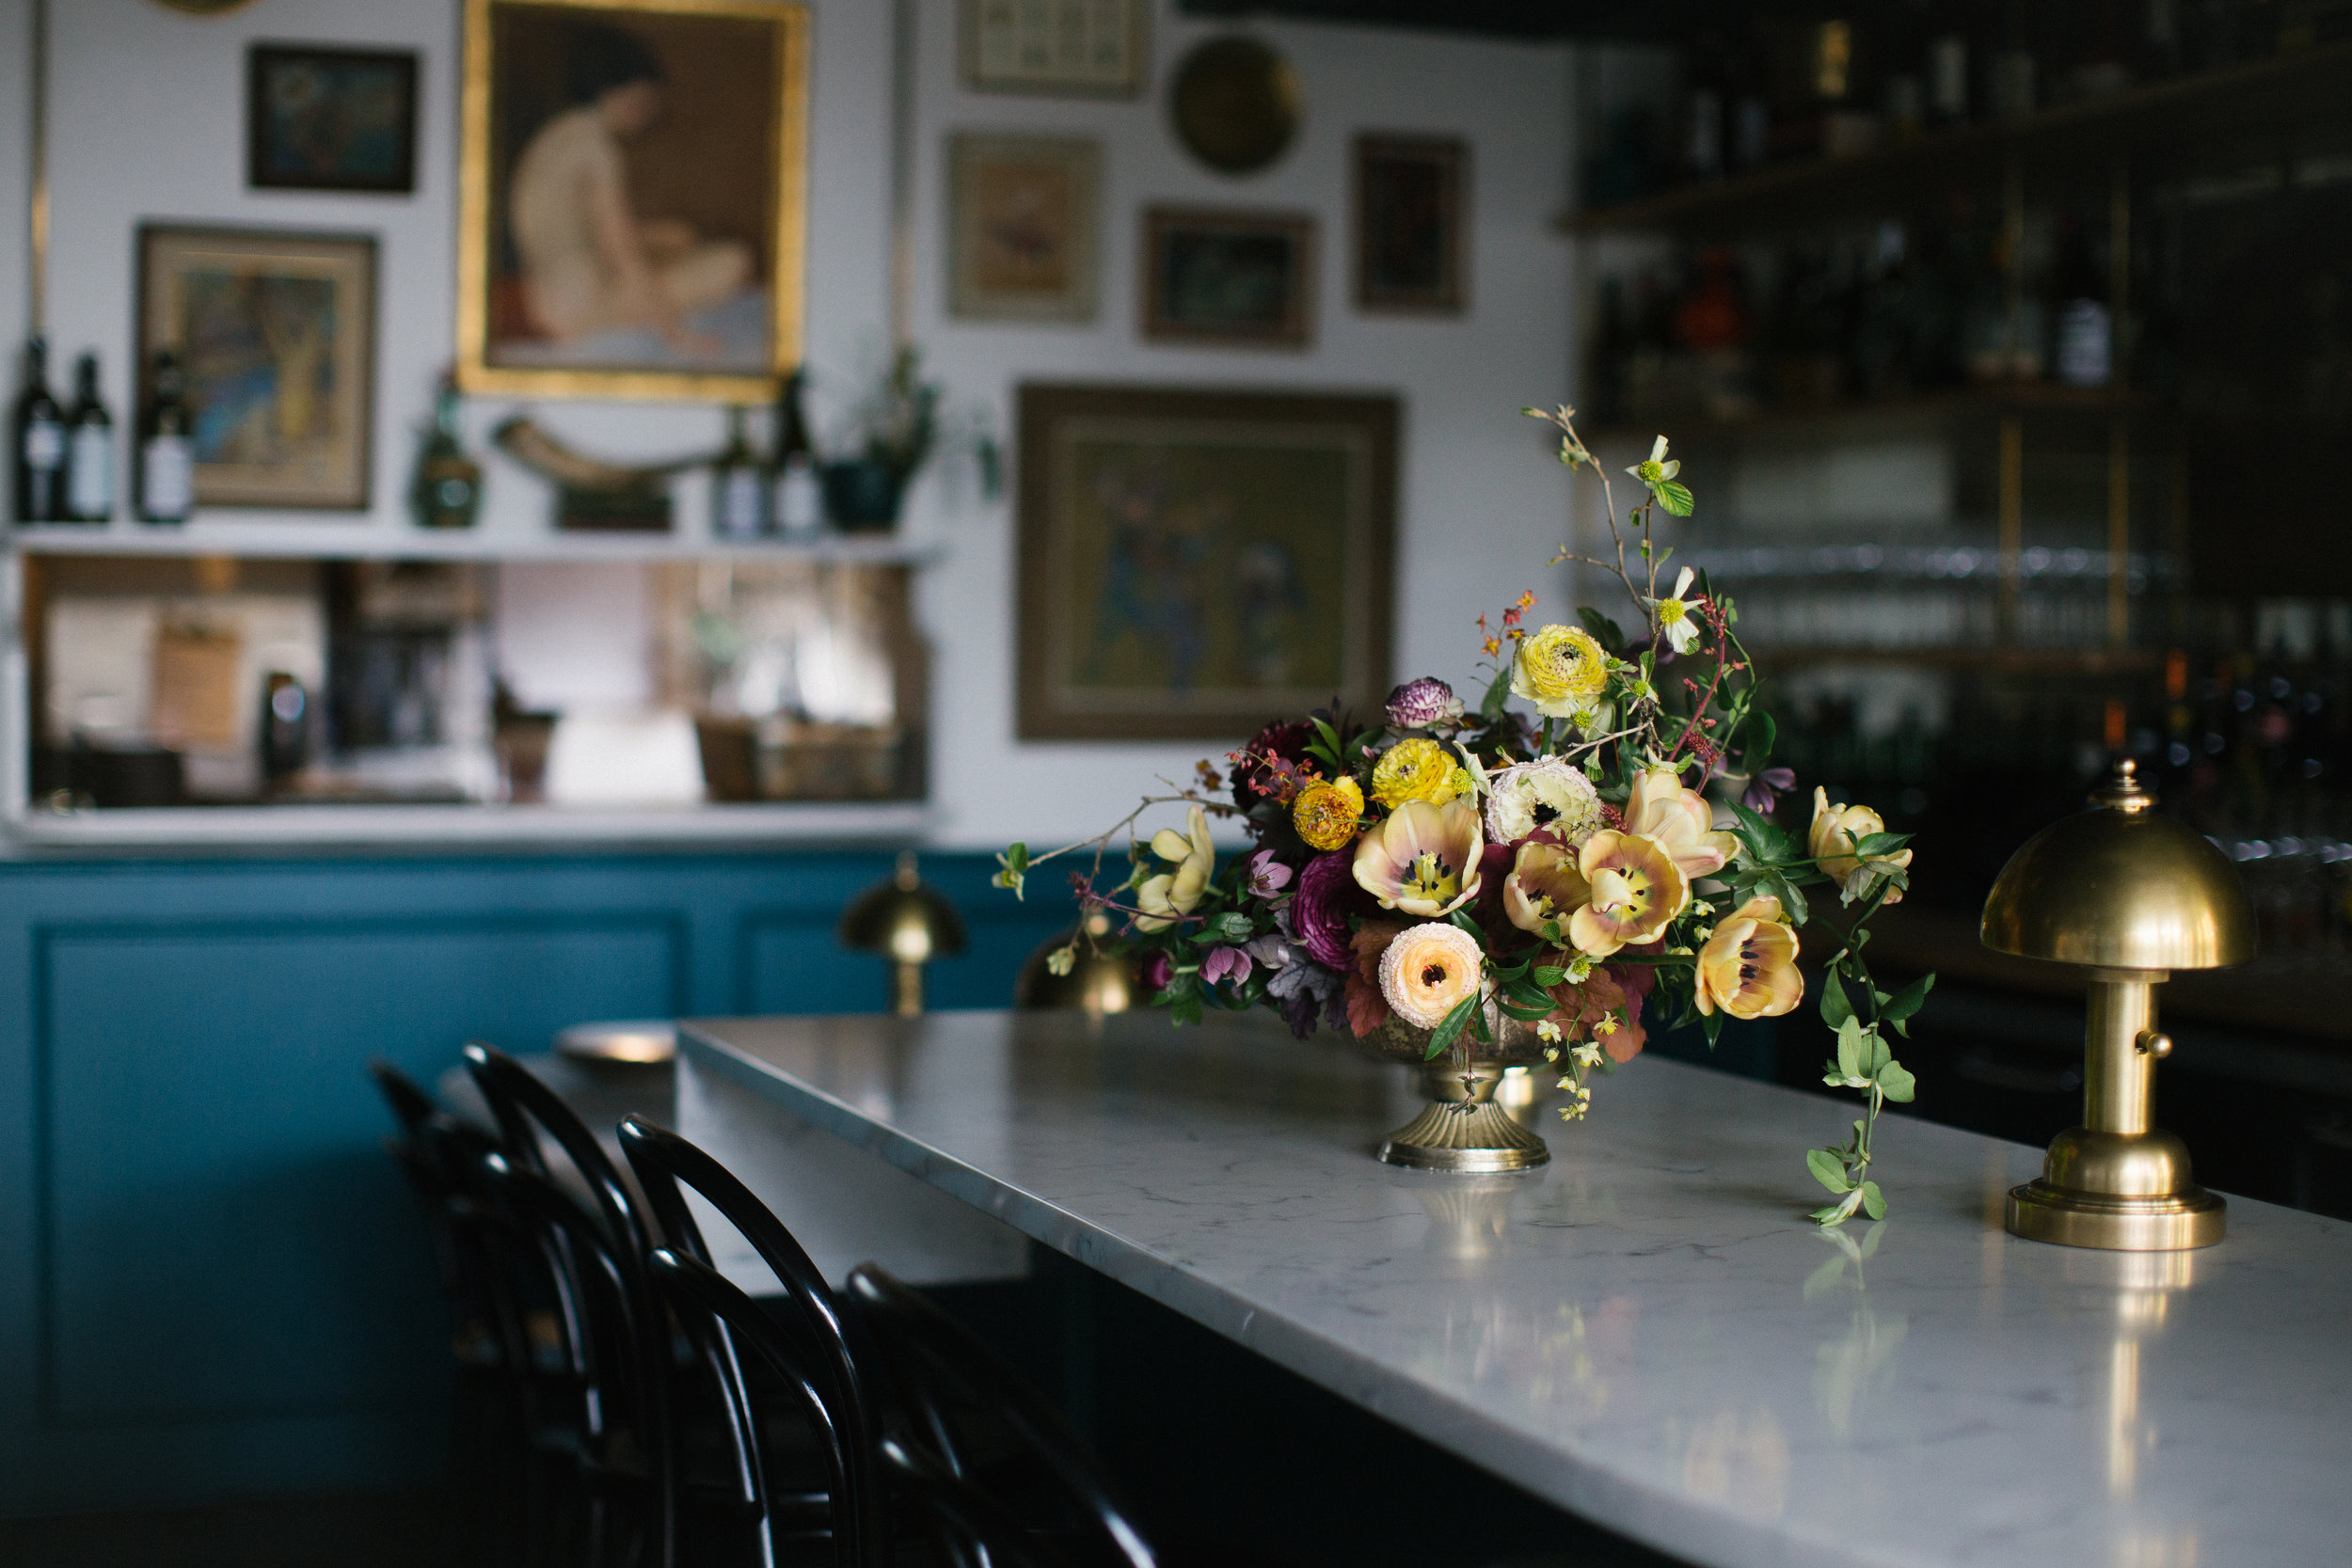 Lush blooms in a moody space